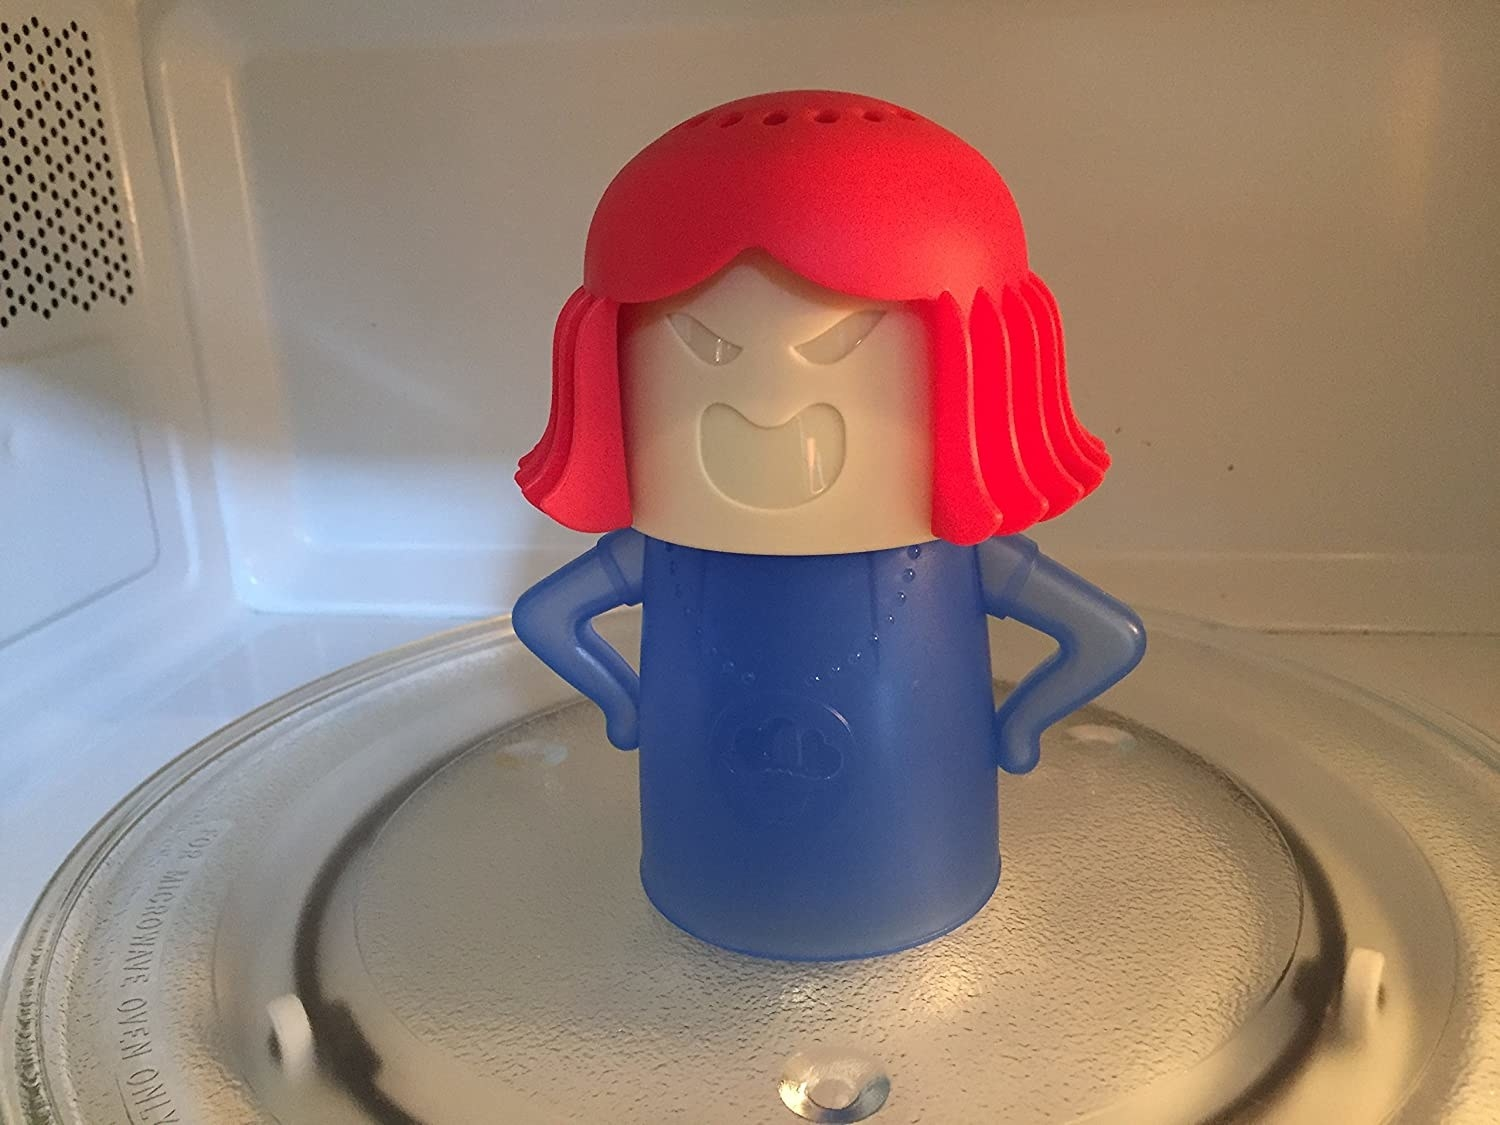 A tiny silicone steamer in the shape of a person with perforated holes on the top of their head sitting in a microwave